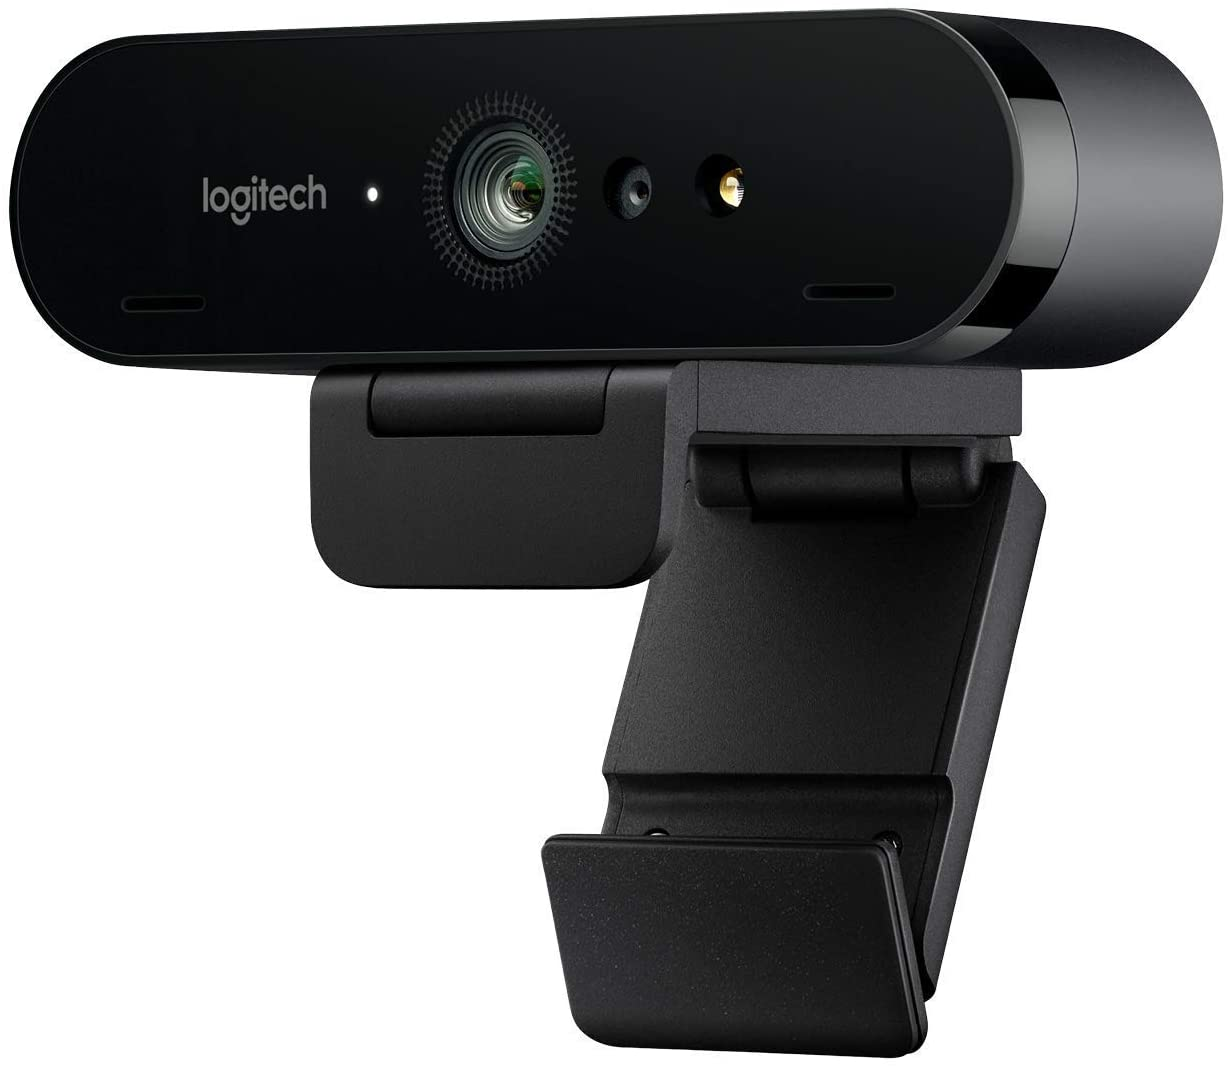 Best Webcam for Streaming - 9 Great Products and Reviews